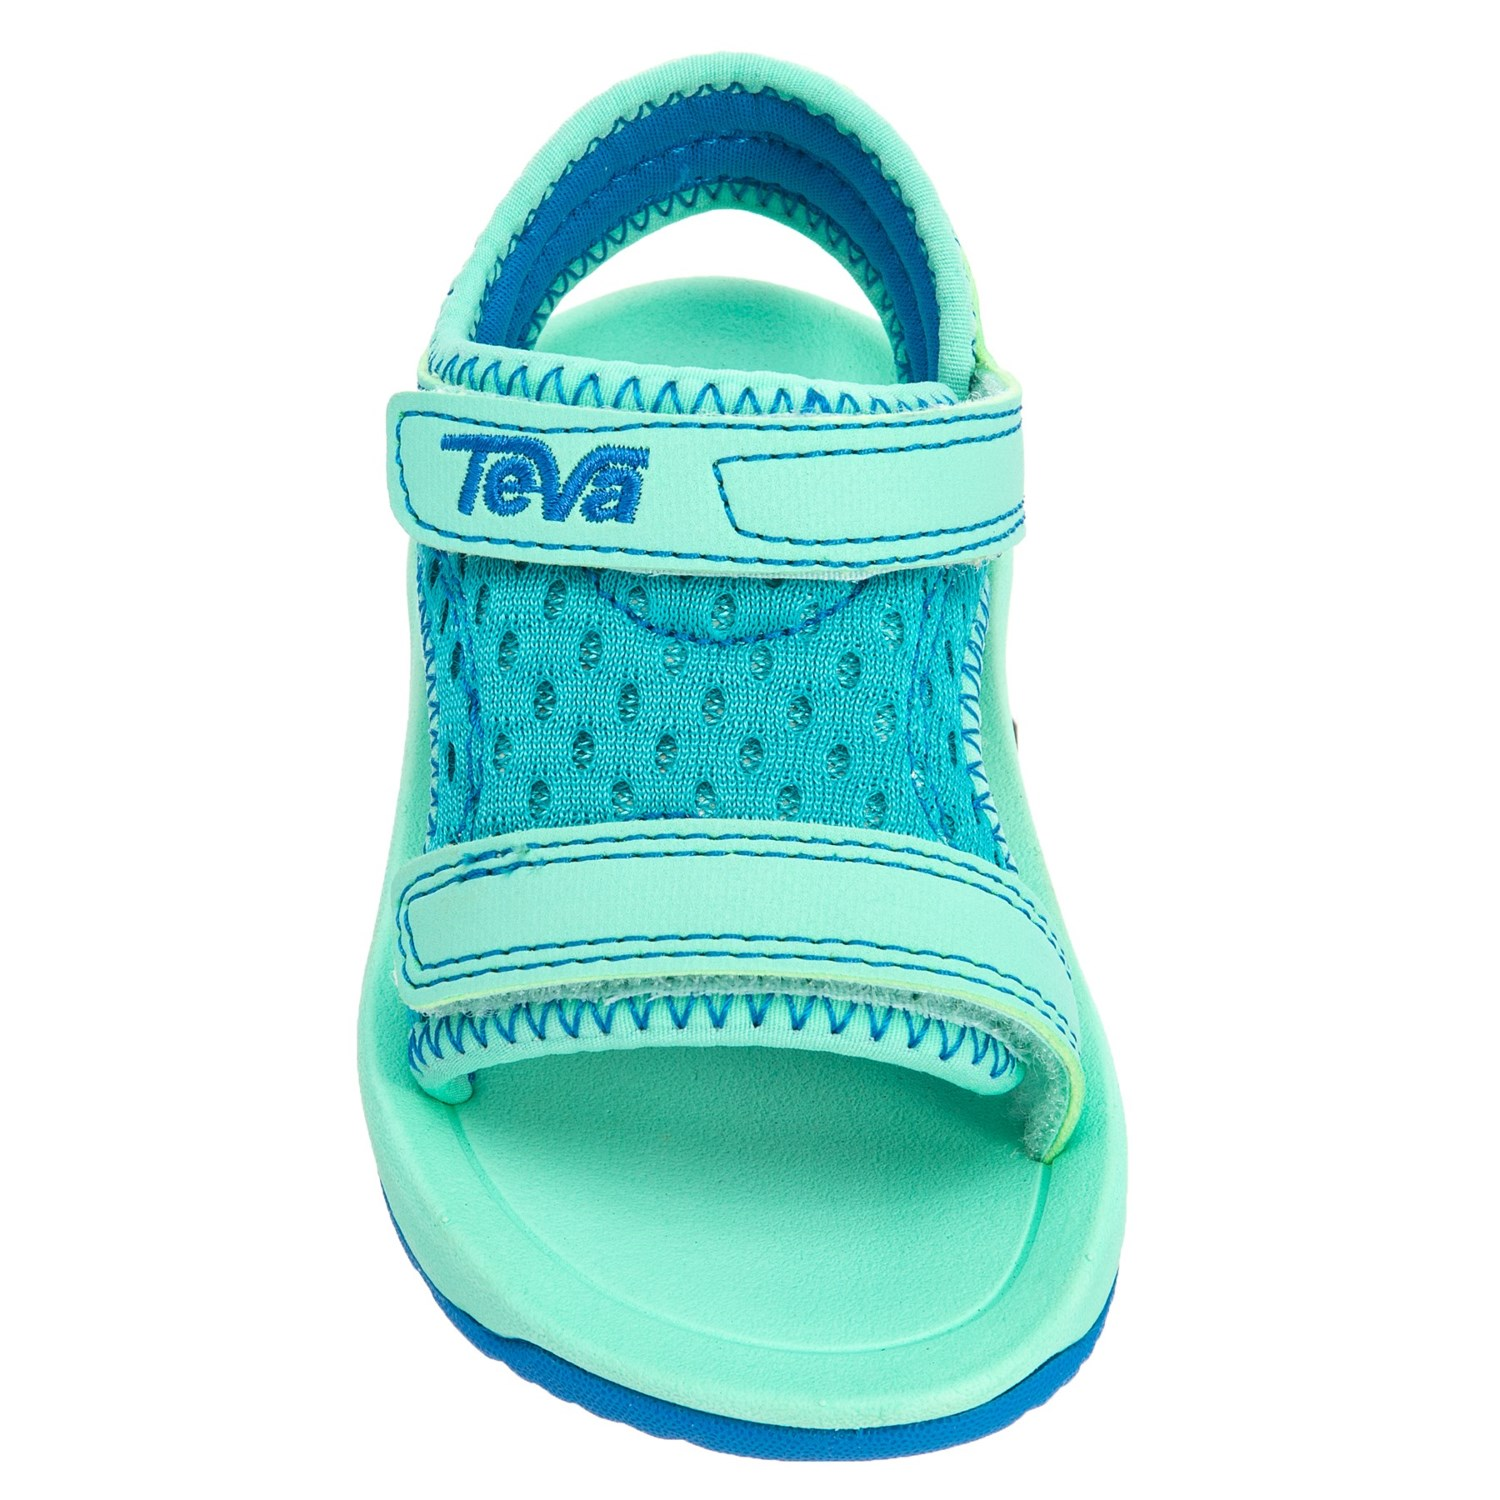 39d6fecdb Teva Psyclone XLT Sport Sandals (For Girls) - Save 20%